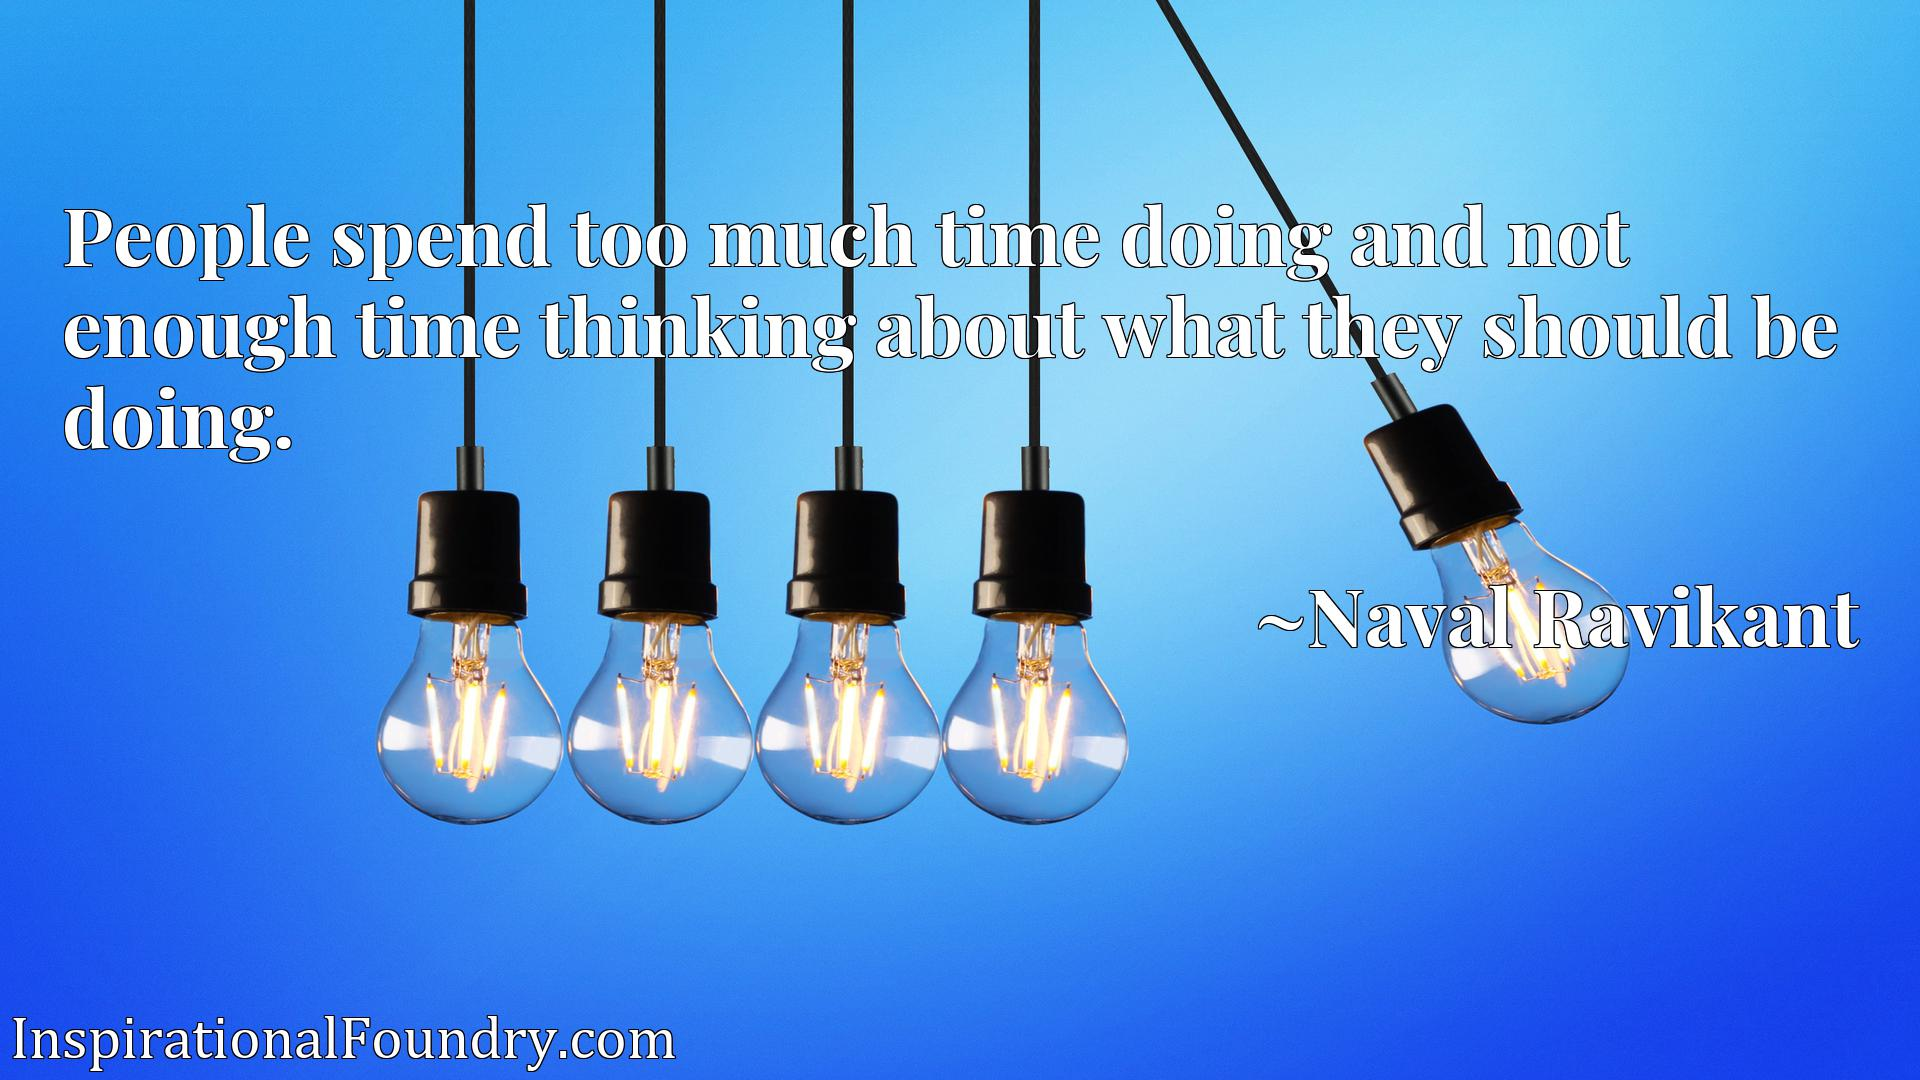 People spend too much time doing and not enough time thinking about what they should be doing.